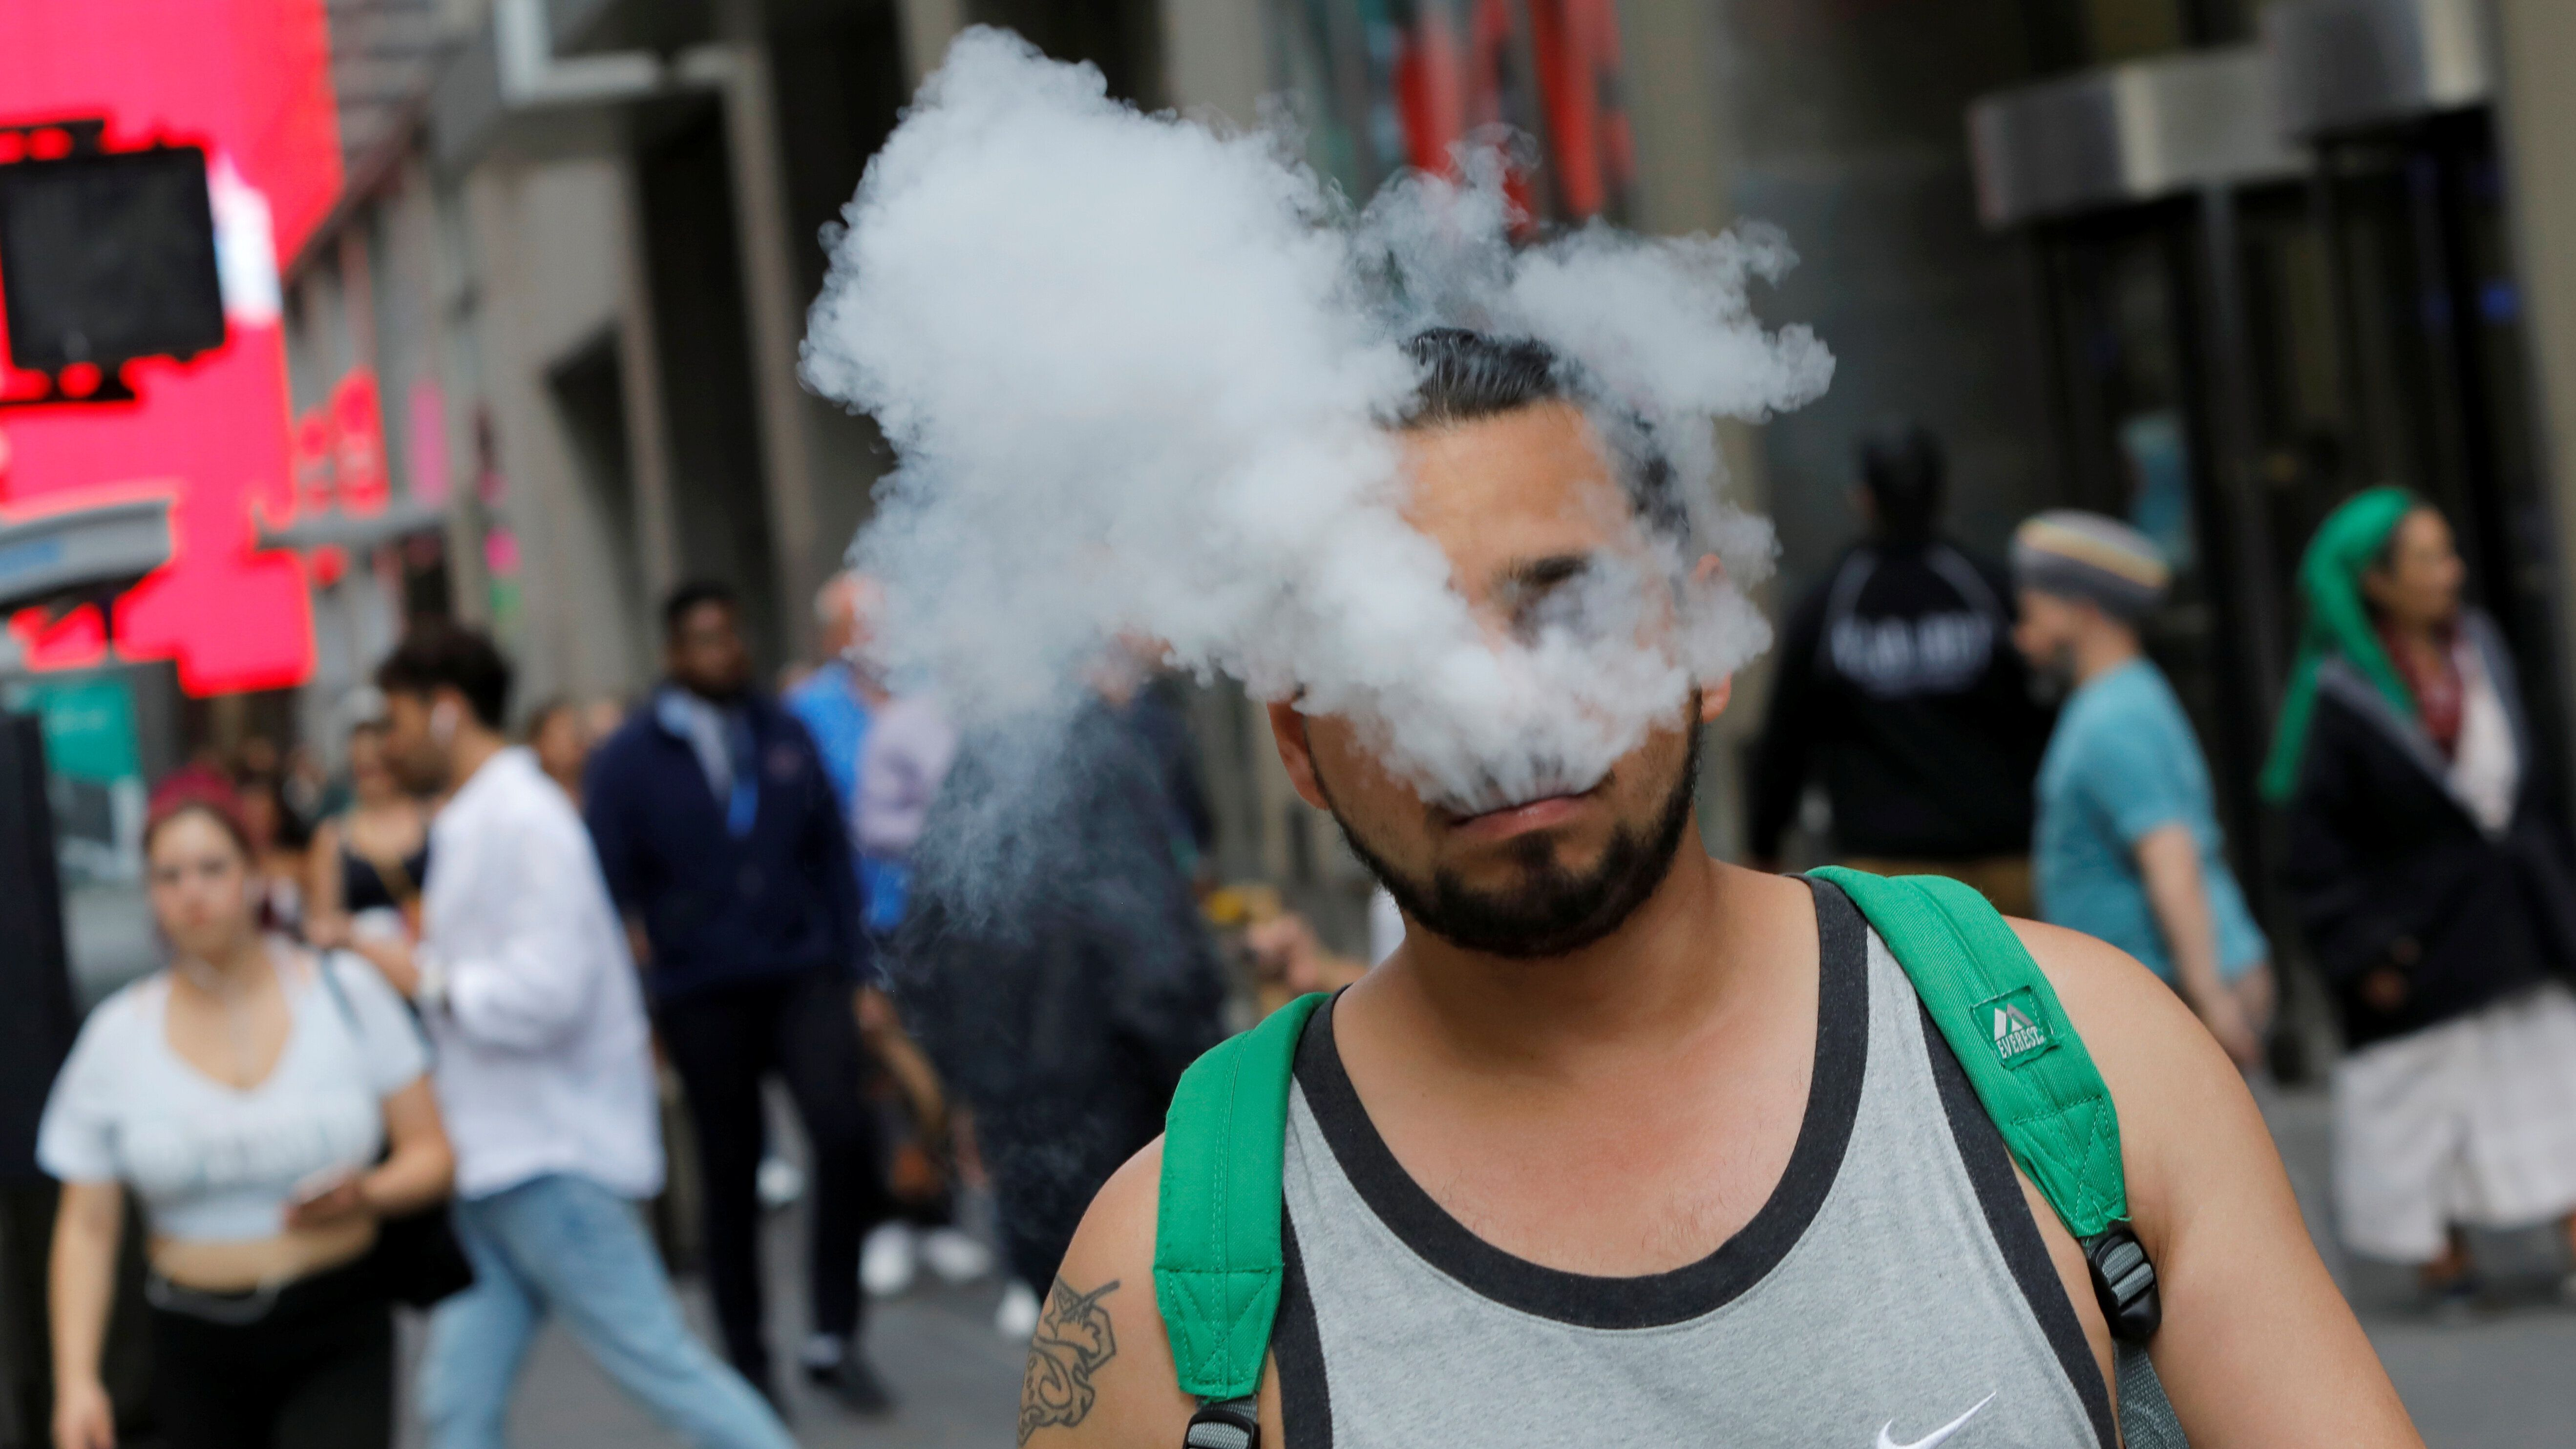 A man uses a vape as he walks on Broadway in New York City, U.S., September 9, 2019. REUTERS/Andrew Kelly